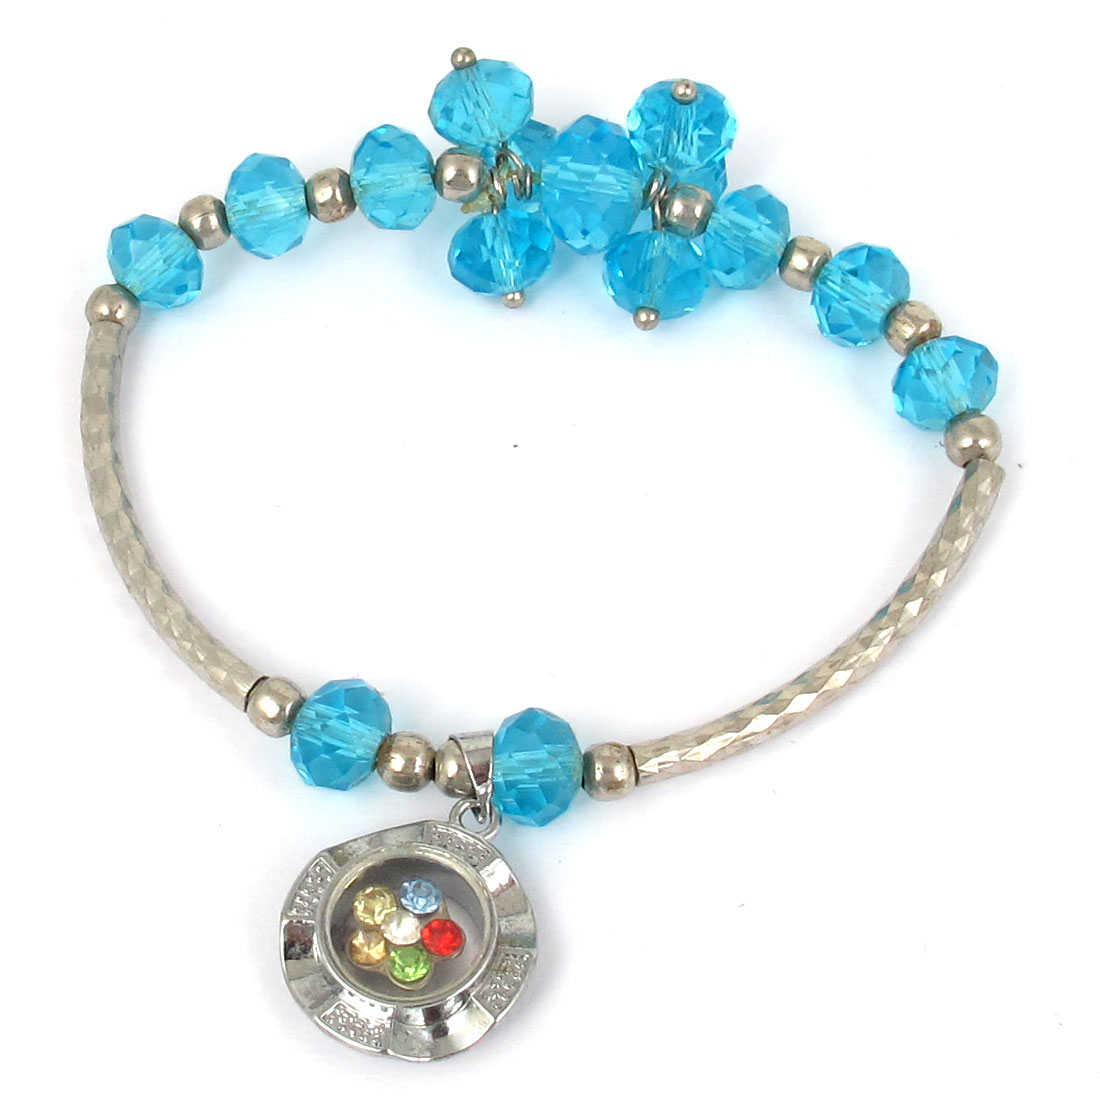 Plastic Faux Faceted Crystal Beads Lucky Pendant Elastic Wrist Ornament Bangle Bracelet Sky Blue